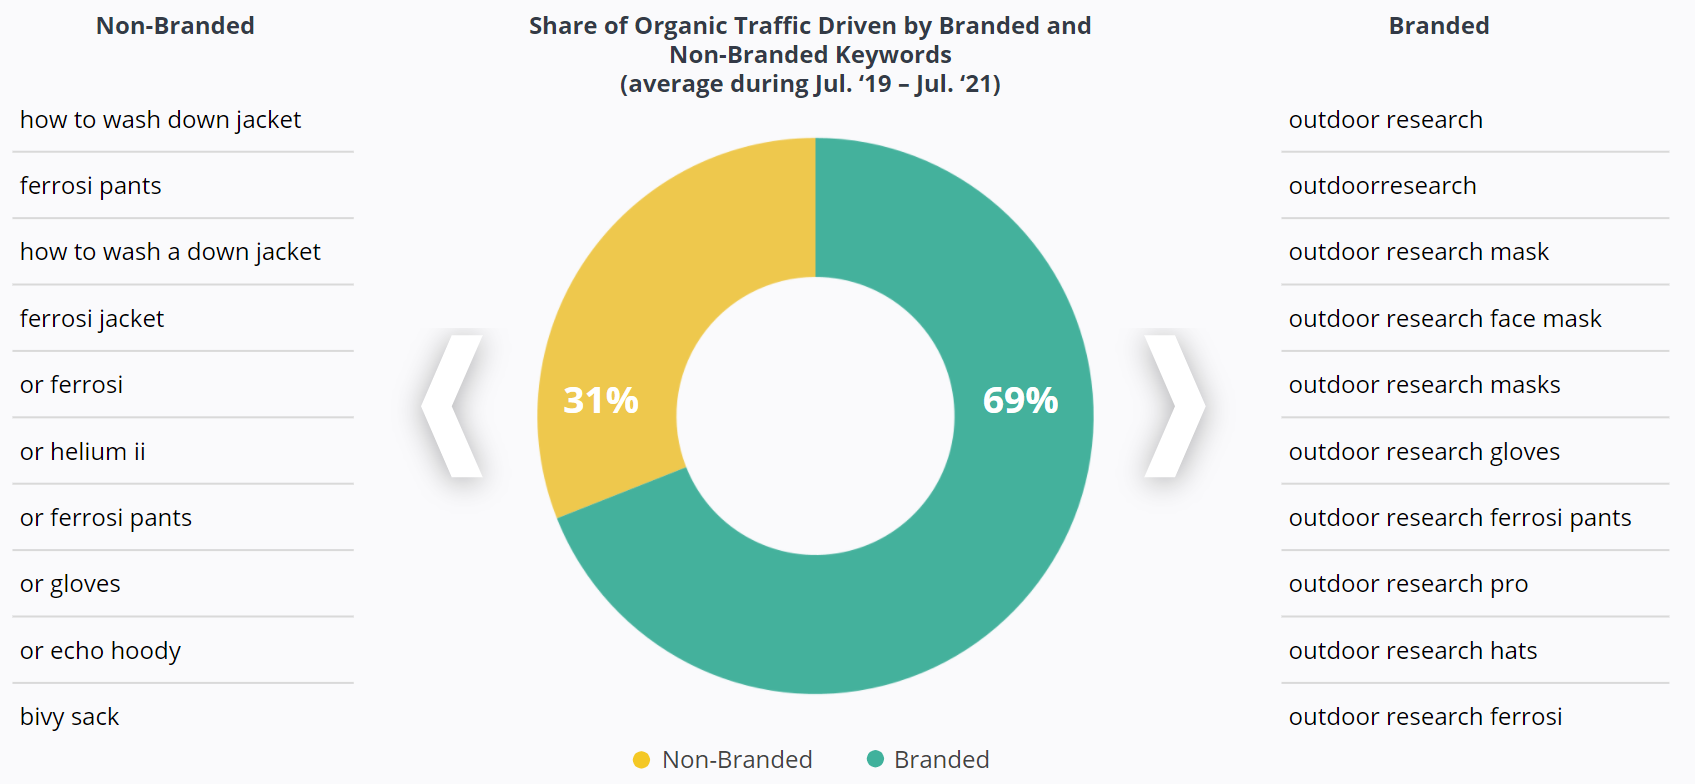 Share of Organic Traffic Driven by Branded and Non-Branded Keywords